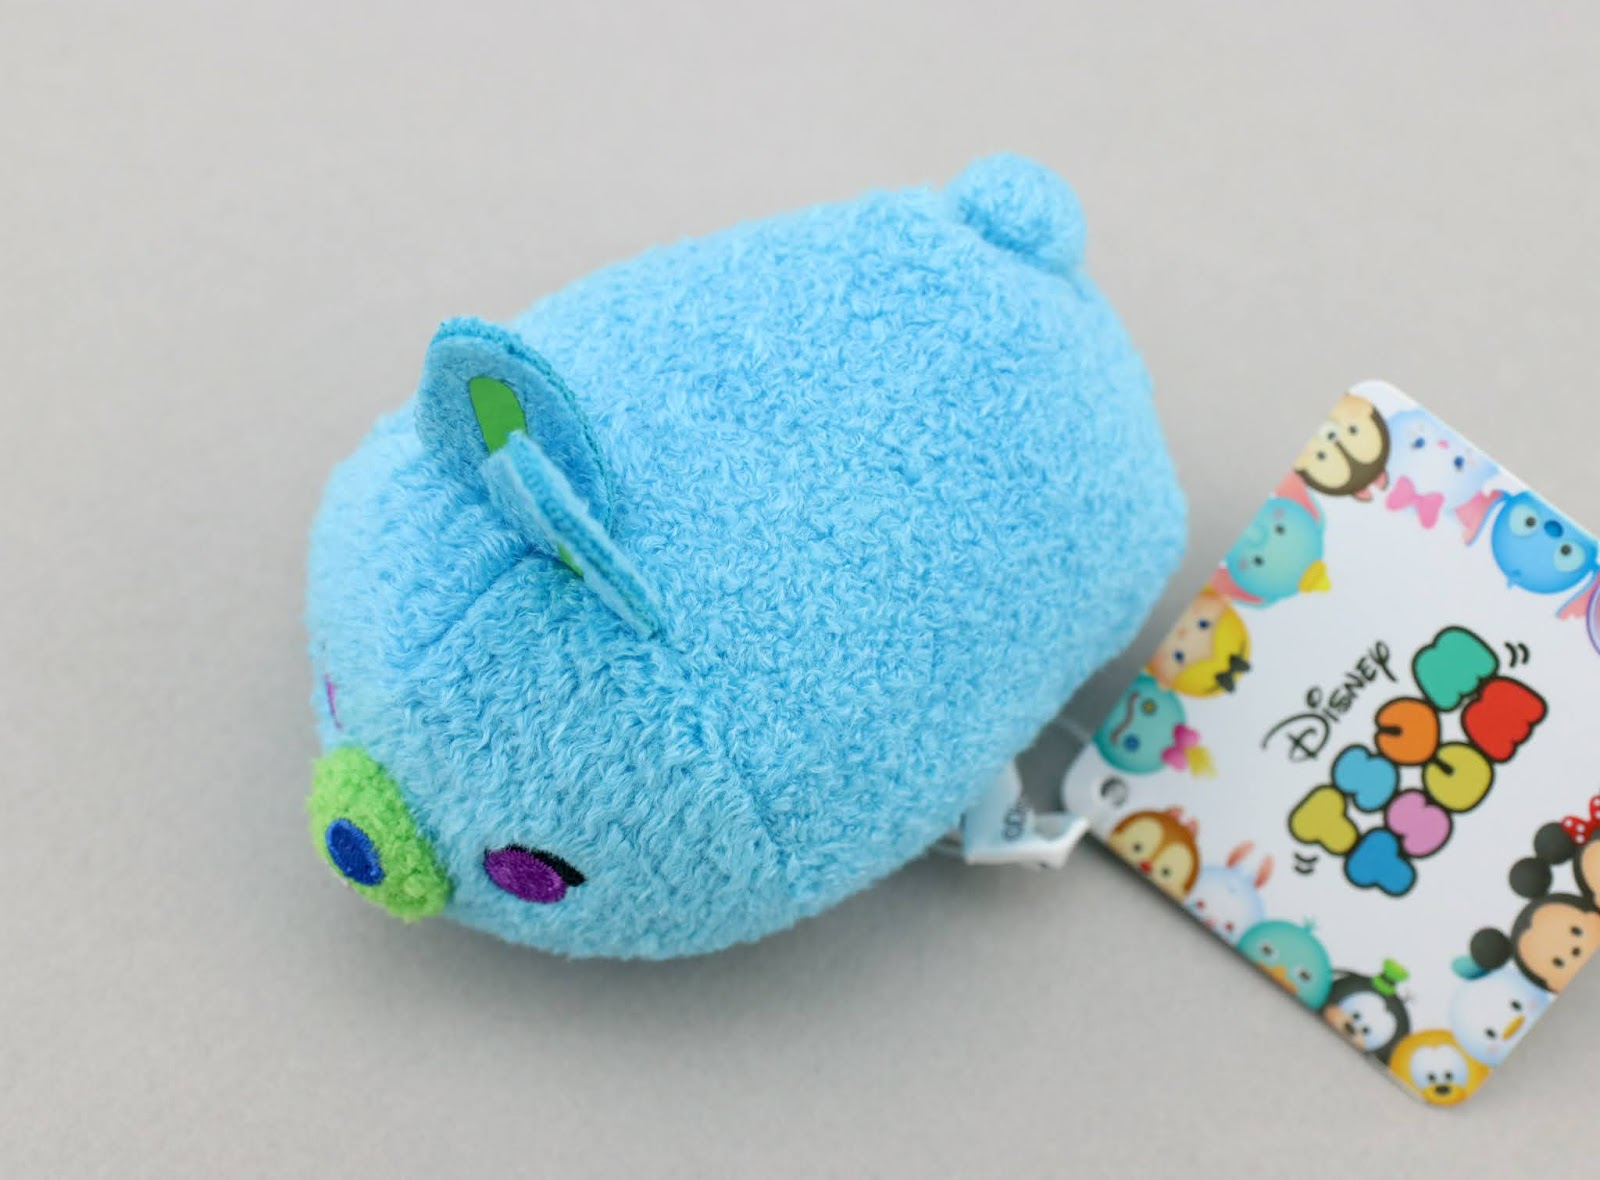 toy story 4 tsum tsums bunny